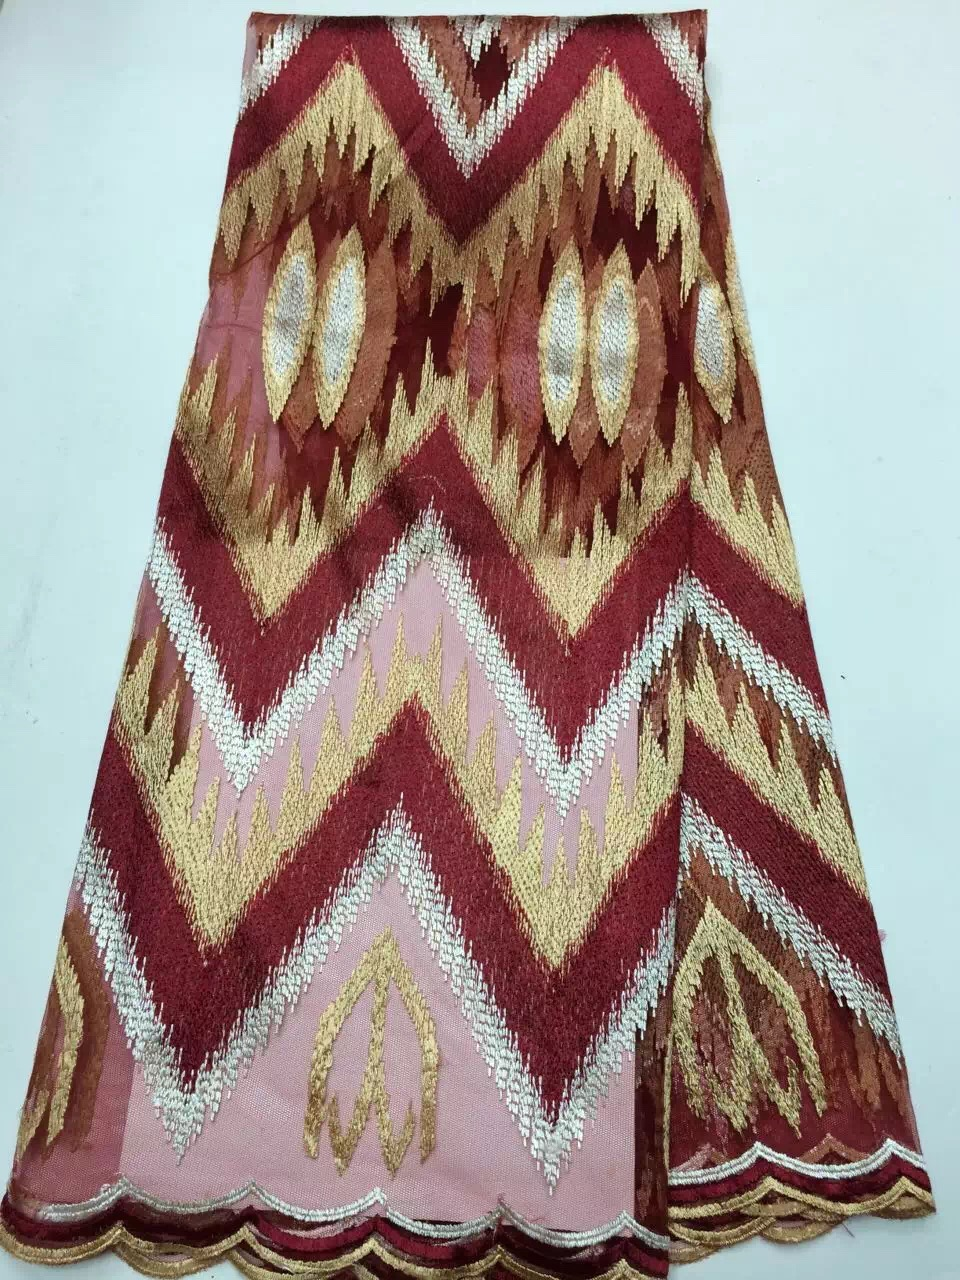 Big sale new design yarn dyed African kitted silk lace fabrics french net guipure for women dress 5yards free shipping(China (Mainland))